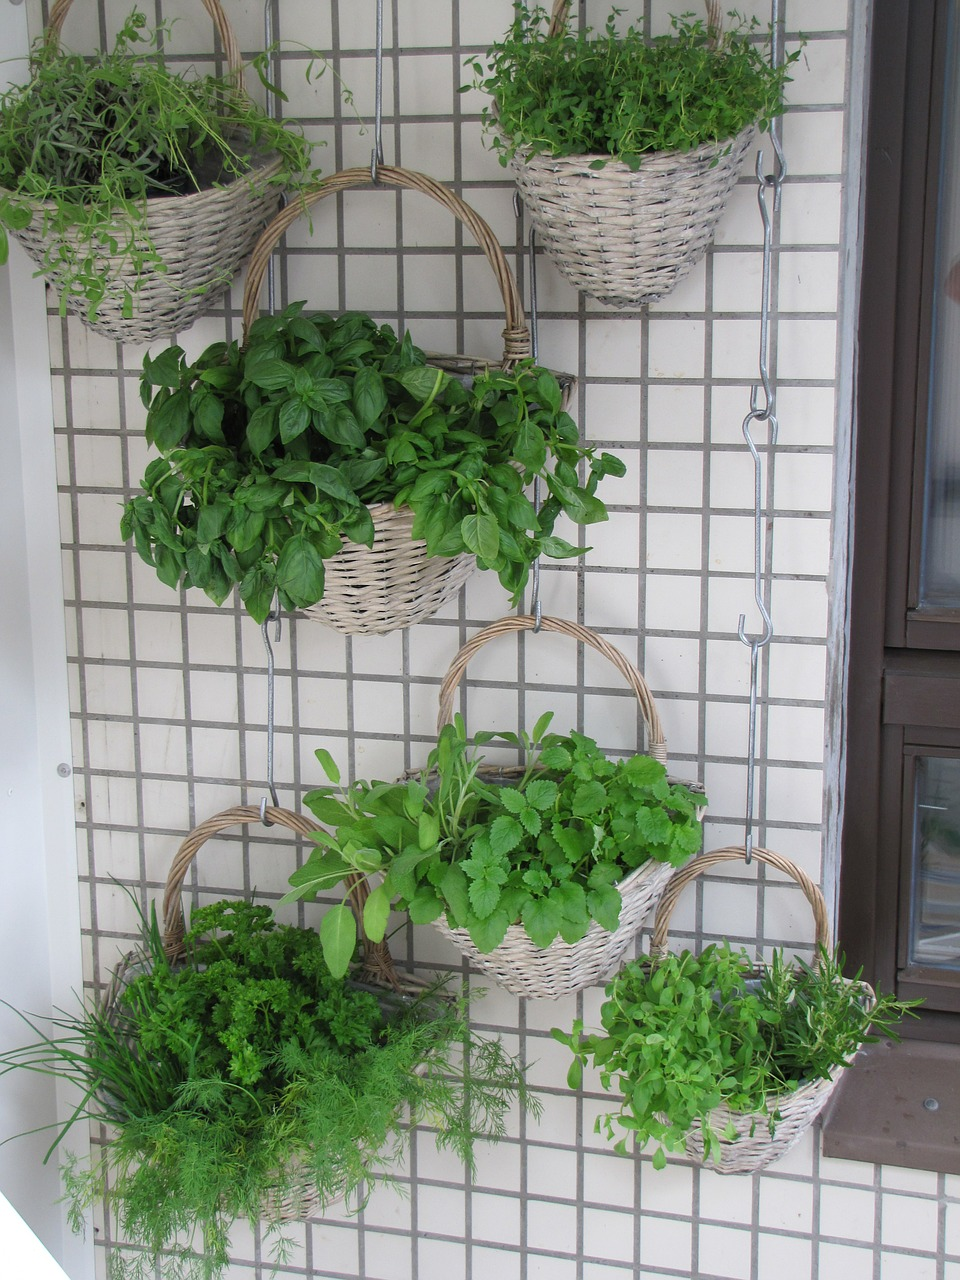 balcony,herbs,verkikaalipuutarha,vertical planting,planting baskets,wall garden,herb,basil,thyme,lavender,melissa,parsley,dill,chives,free pictures, free photos, free images, royalty free, free illustrations, public domain